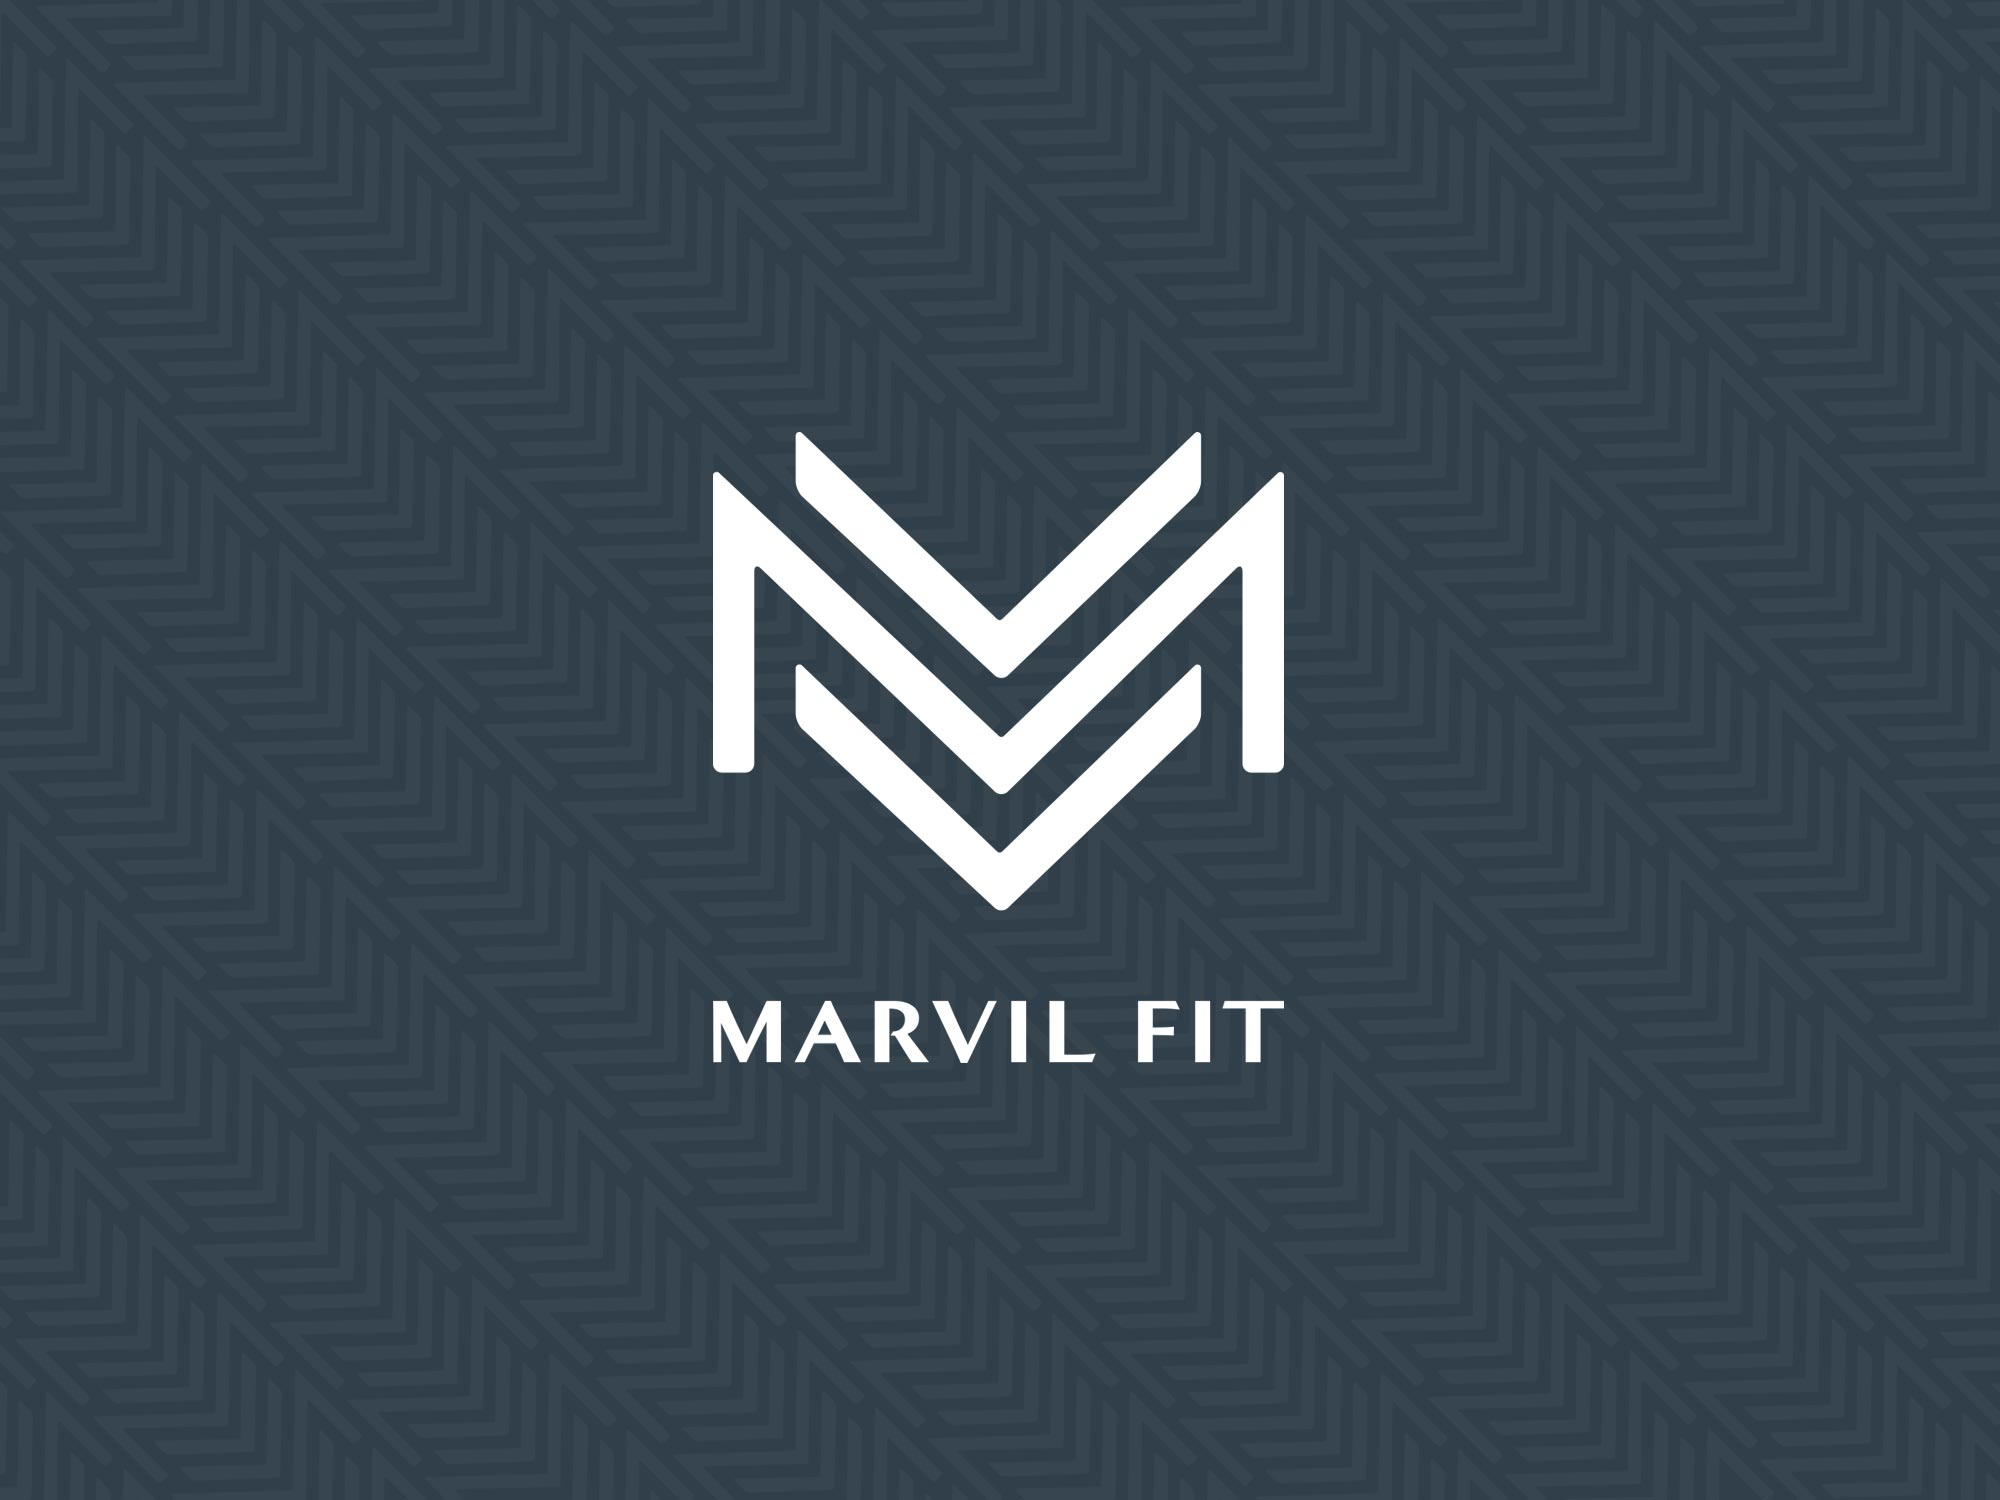 solmarkcreative-marvilfit.jpg